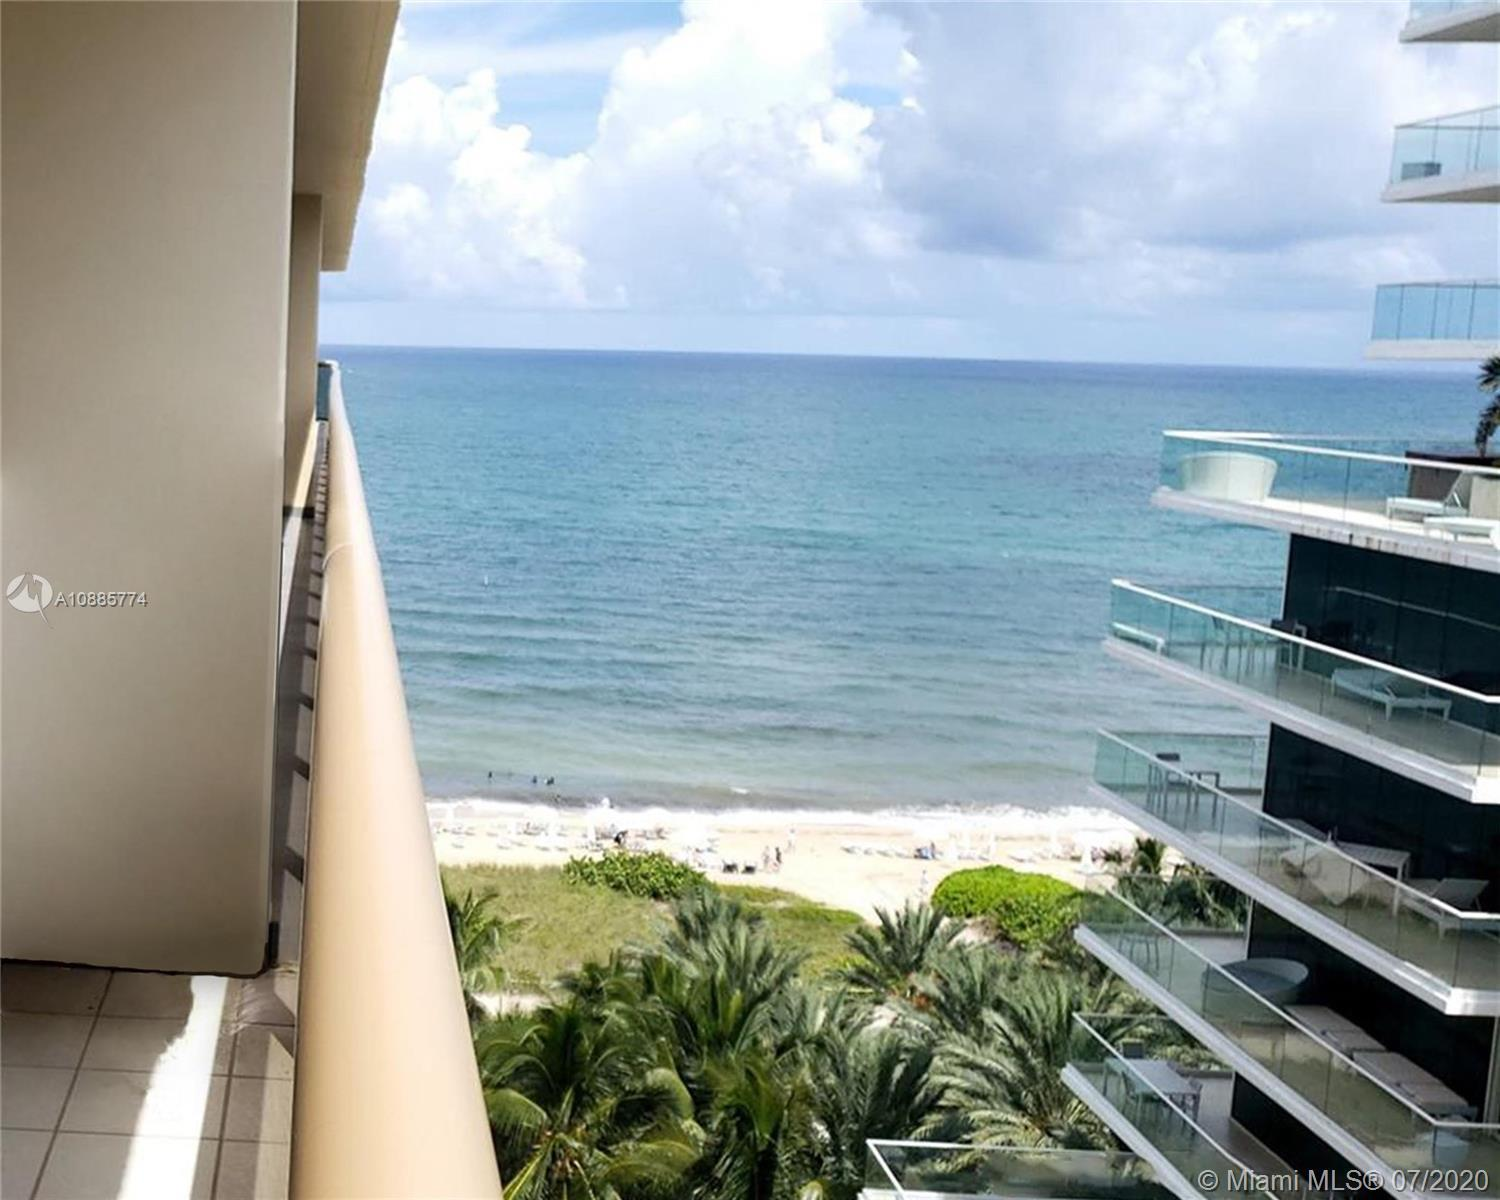 Price drop! Kosher Kitchen, 2/3, 1,510 Sq.ft., in the highly desirable Waves Condo, Surfside. Oceanf